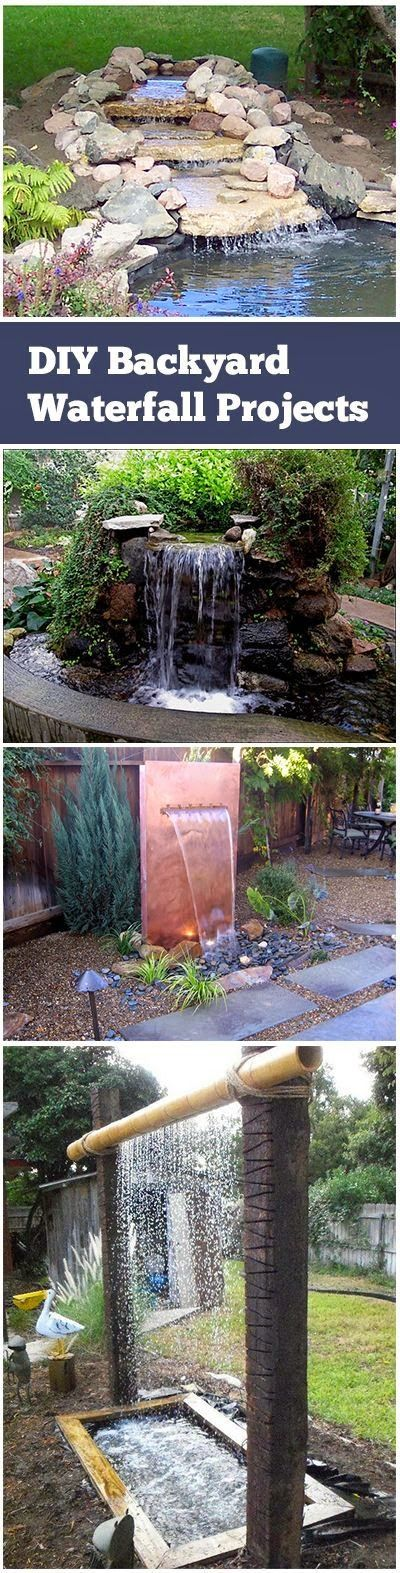 DIY Backyard Waterfall Projects. Second photo: using concrete to build the pond. Then add water feature to pond. Like Carthage.